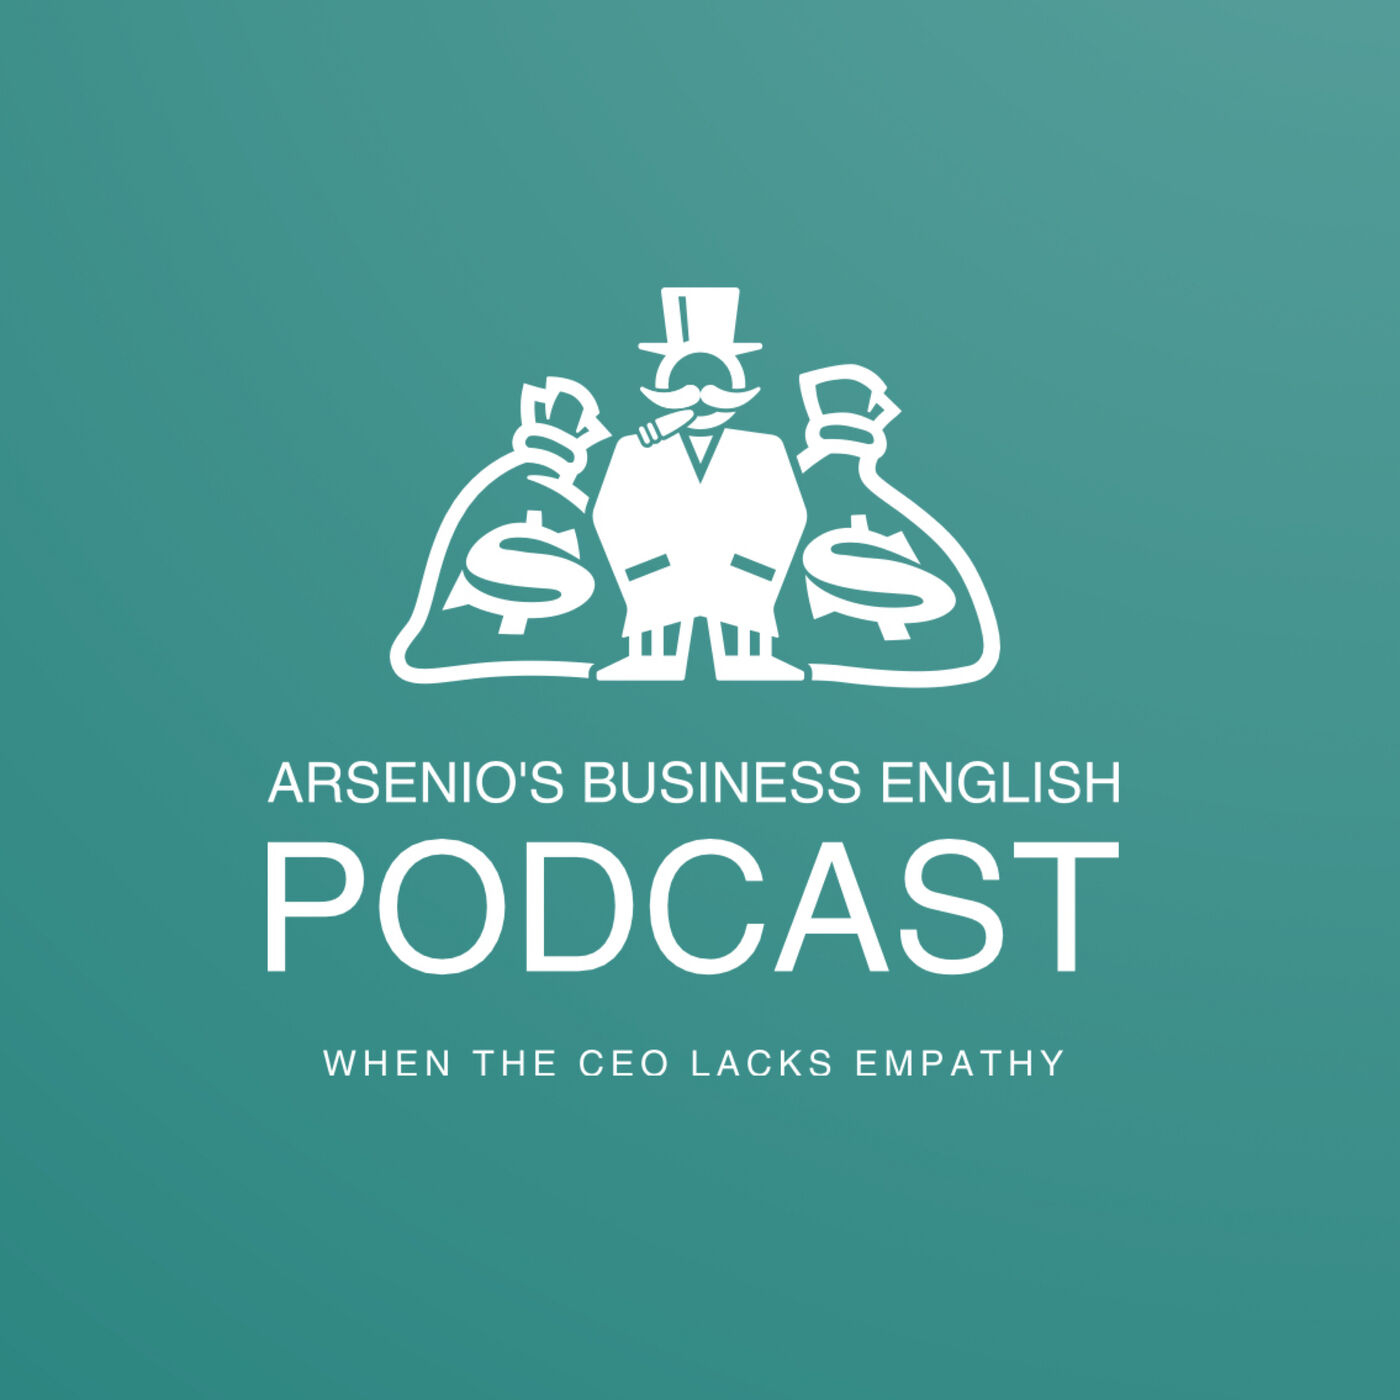 Arsenio's Business English Podcast | Season 6: Episode 31 | When CEOs Lack Empathy